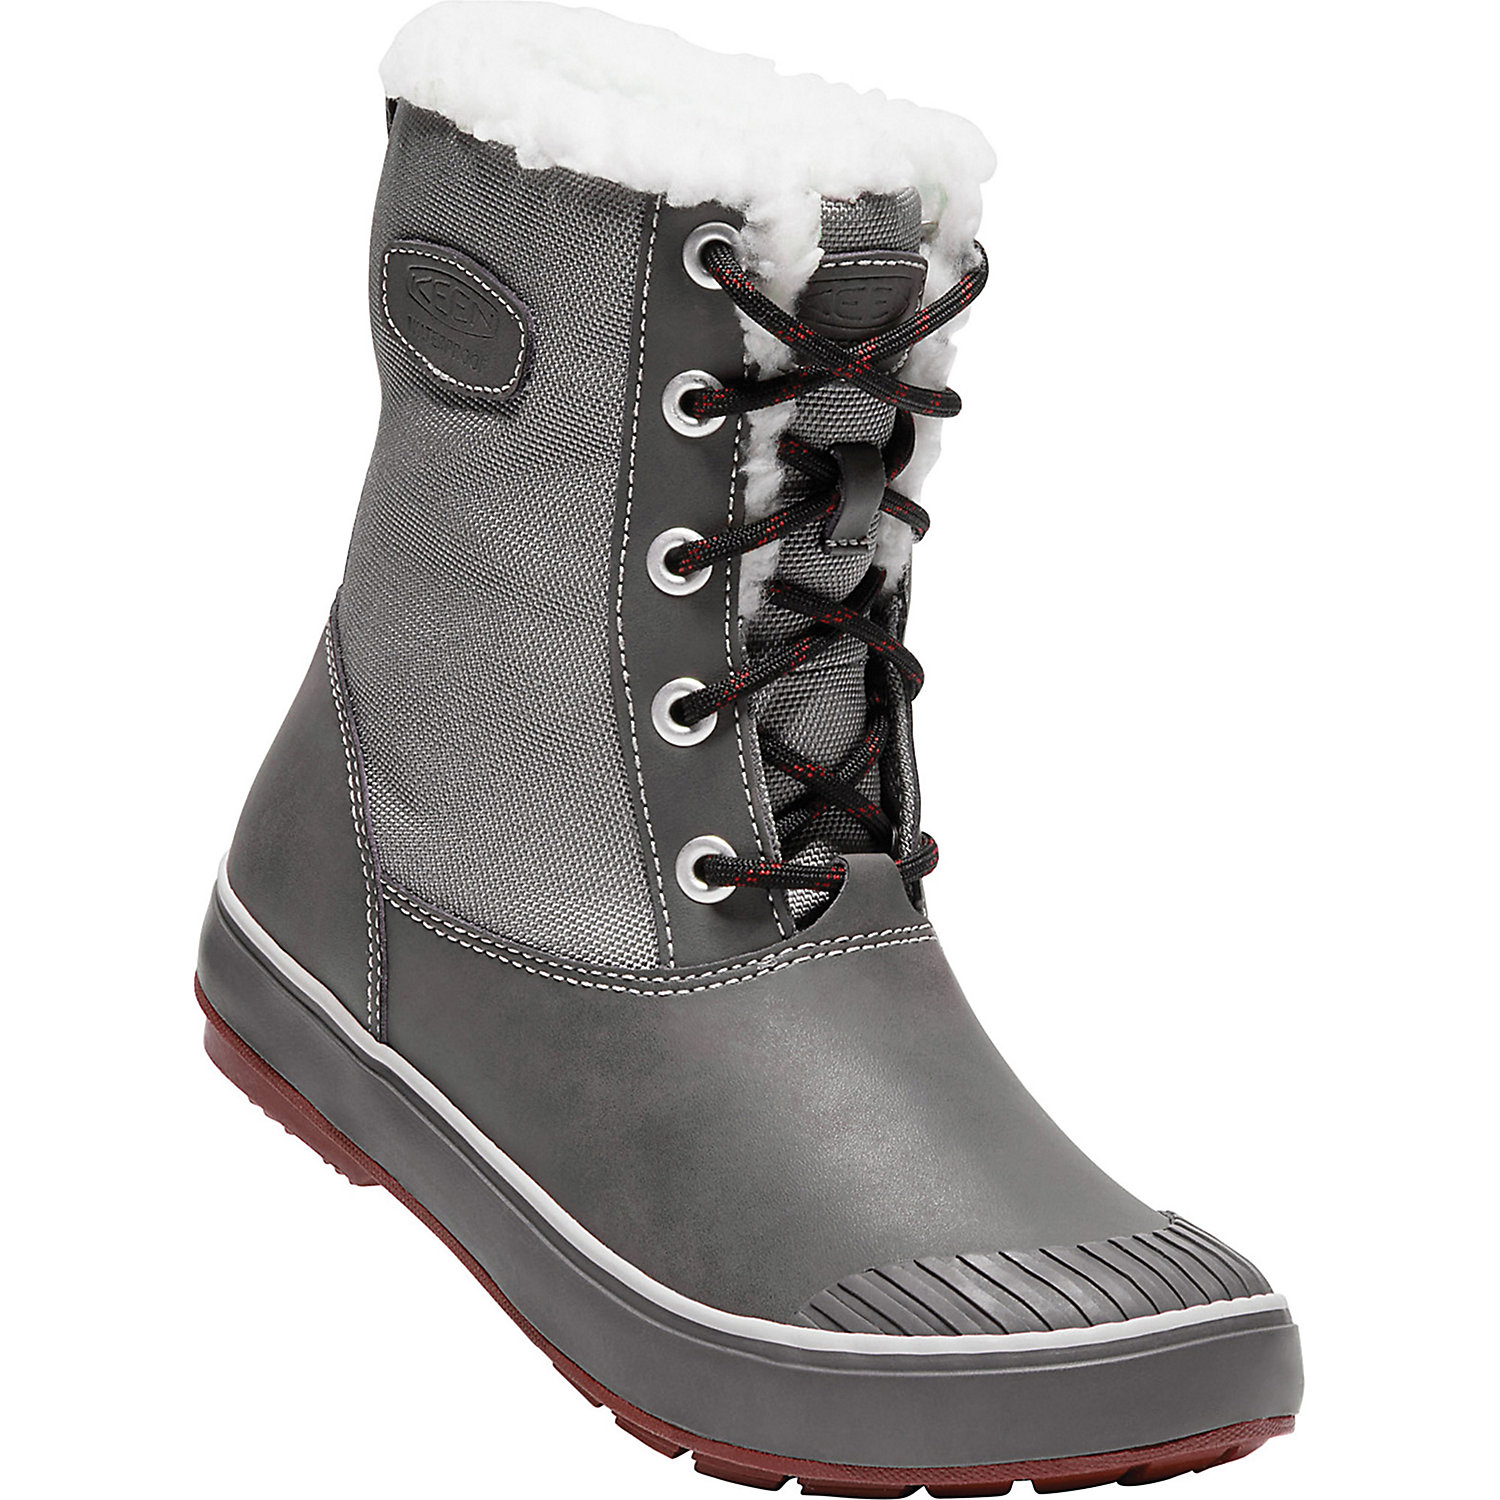 deda169a9ad Keen Women's Elsa Waterproof Boot